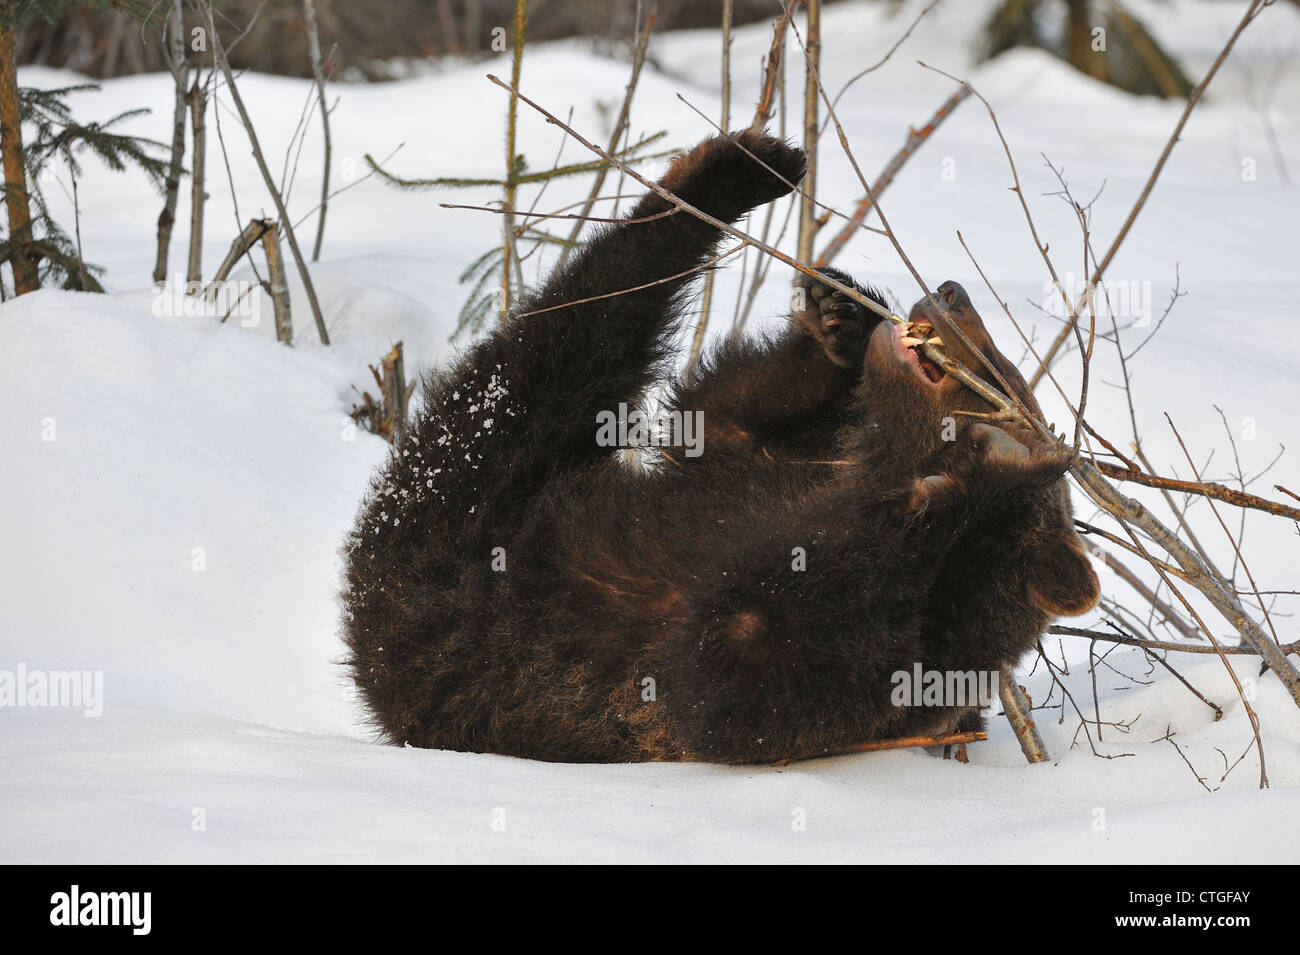 Two-year-old Eurasian brown bear (Ursus arctos arctos) cub playing on its back with twig in the snow in early spring - Stock Image